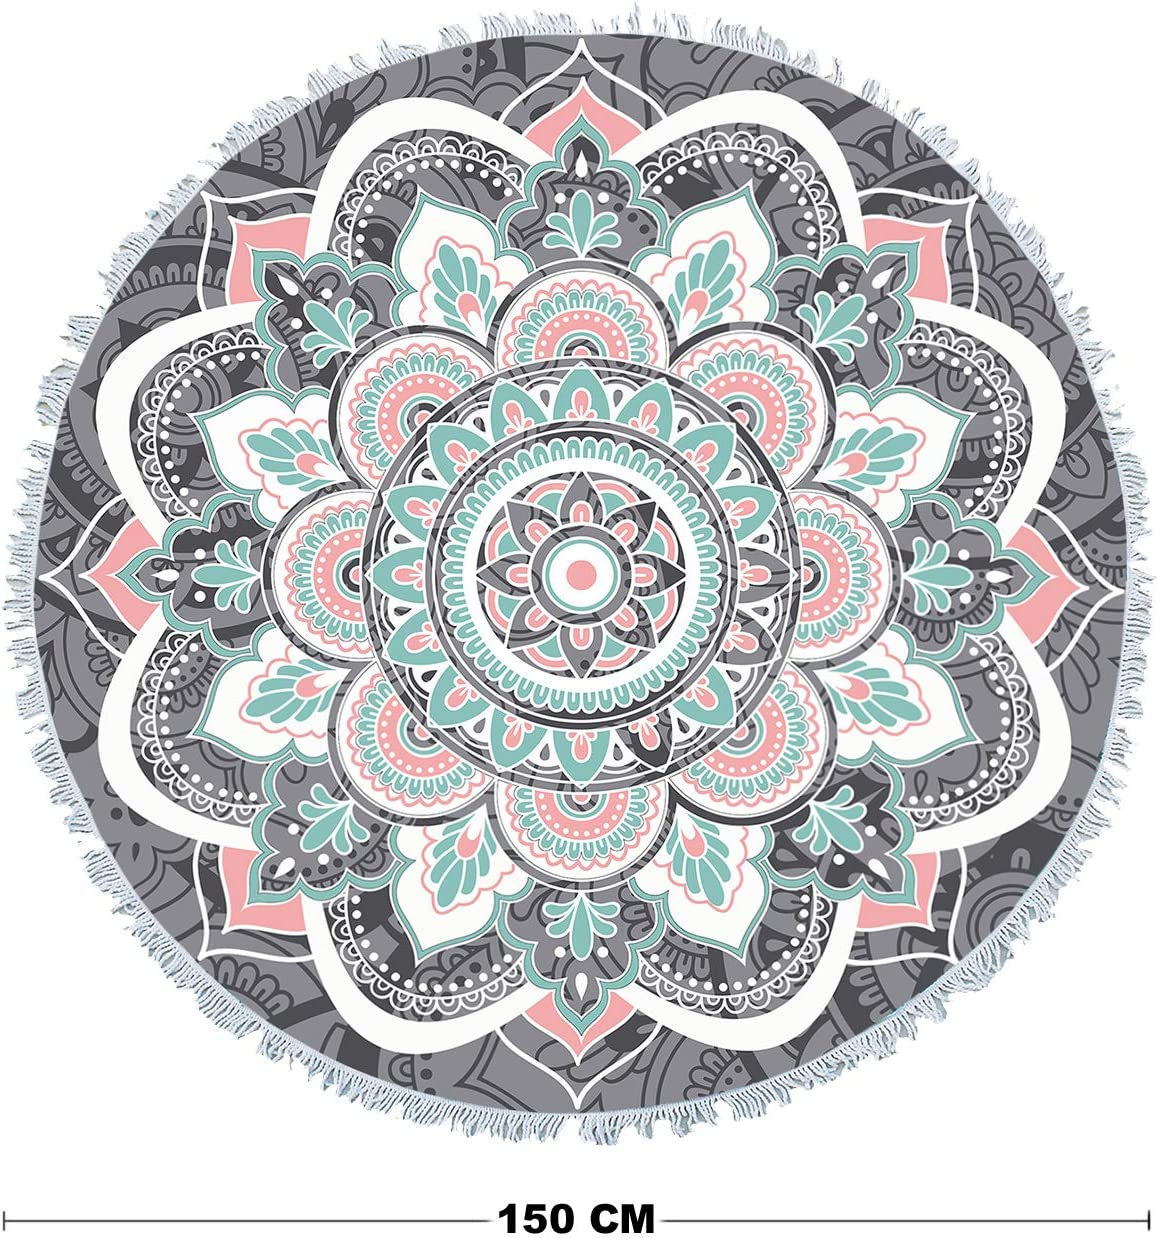 Beach Towel Round Roundie Mandala Tapestry Beach Tapestry Picnic Blanket Yoga Mat Table Cloth Hippie Bohemian Decor Ultra/ Soft/ Super/ Water/ Absorbent 59 inch Orange